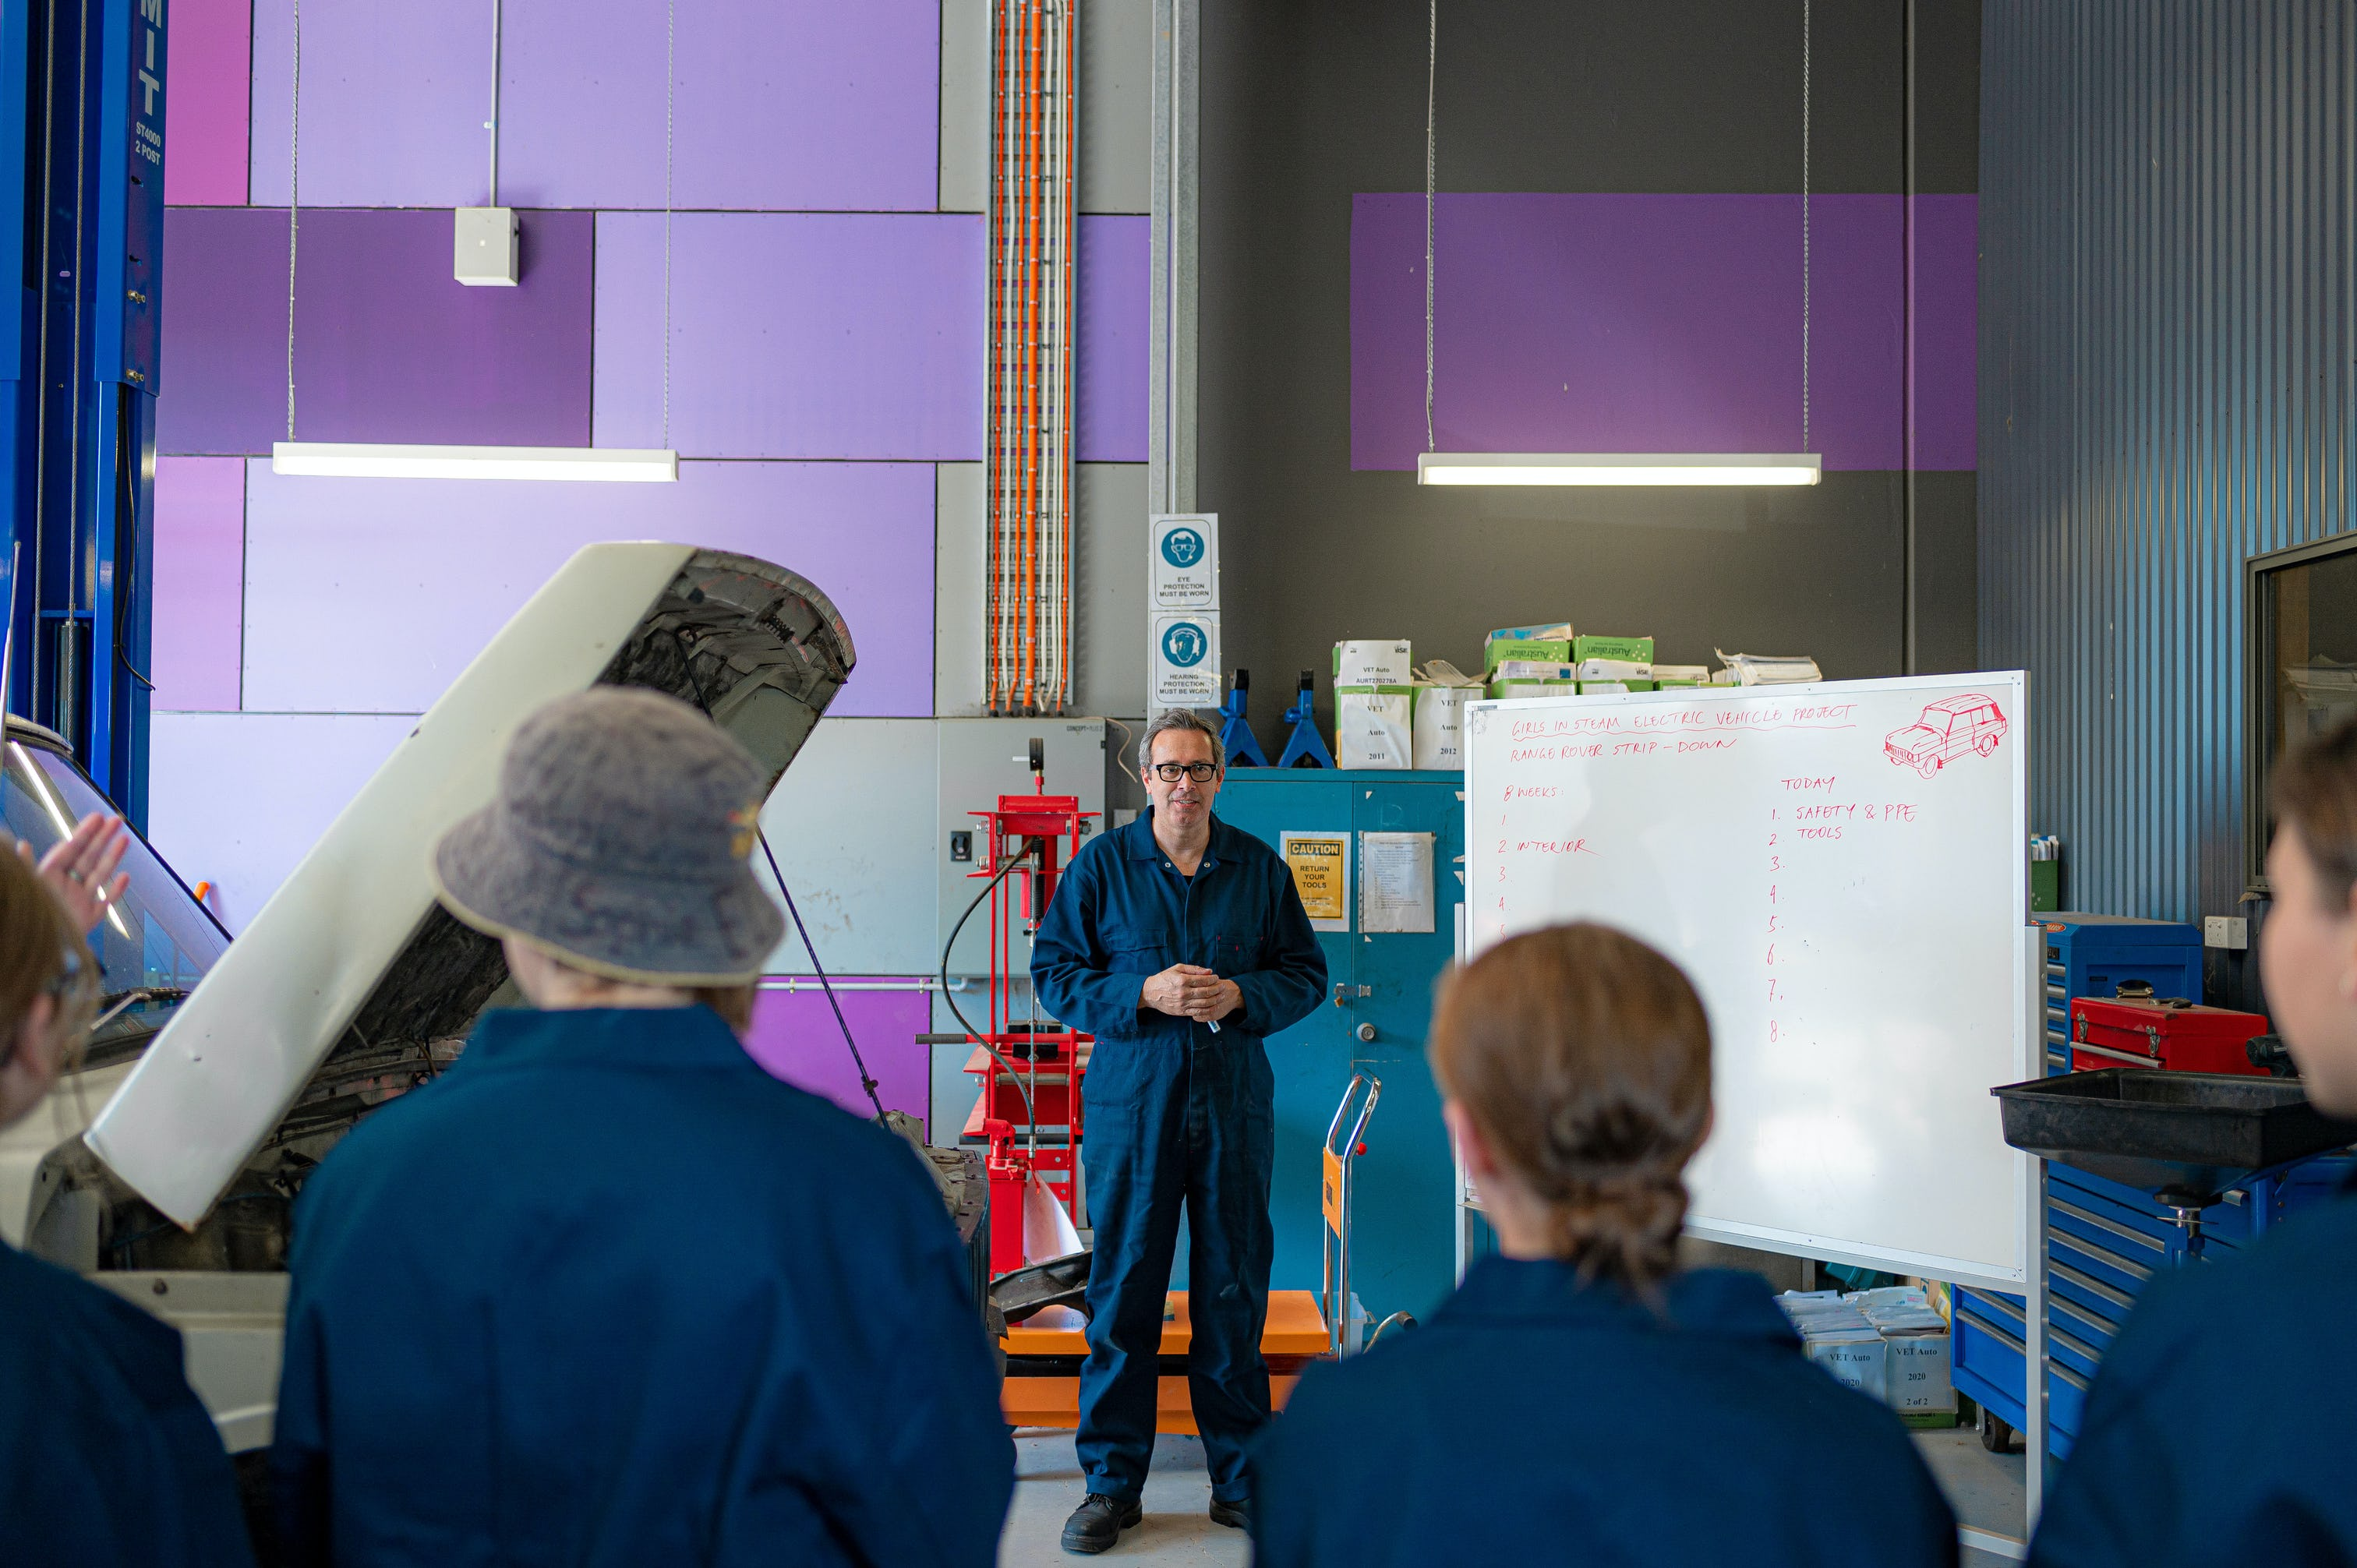 Graeme and students in the workshop at Bendigo South East Secondary College.